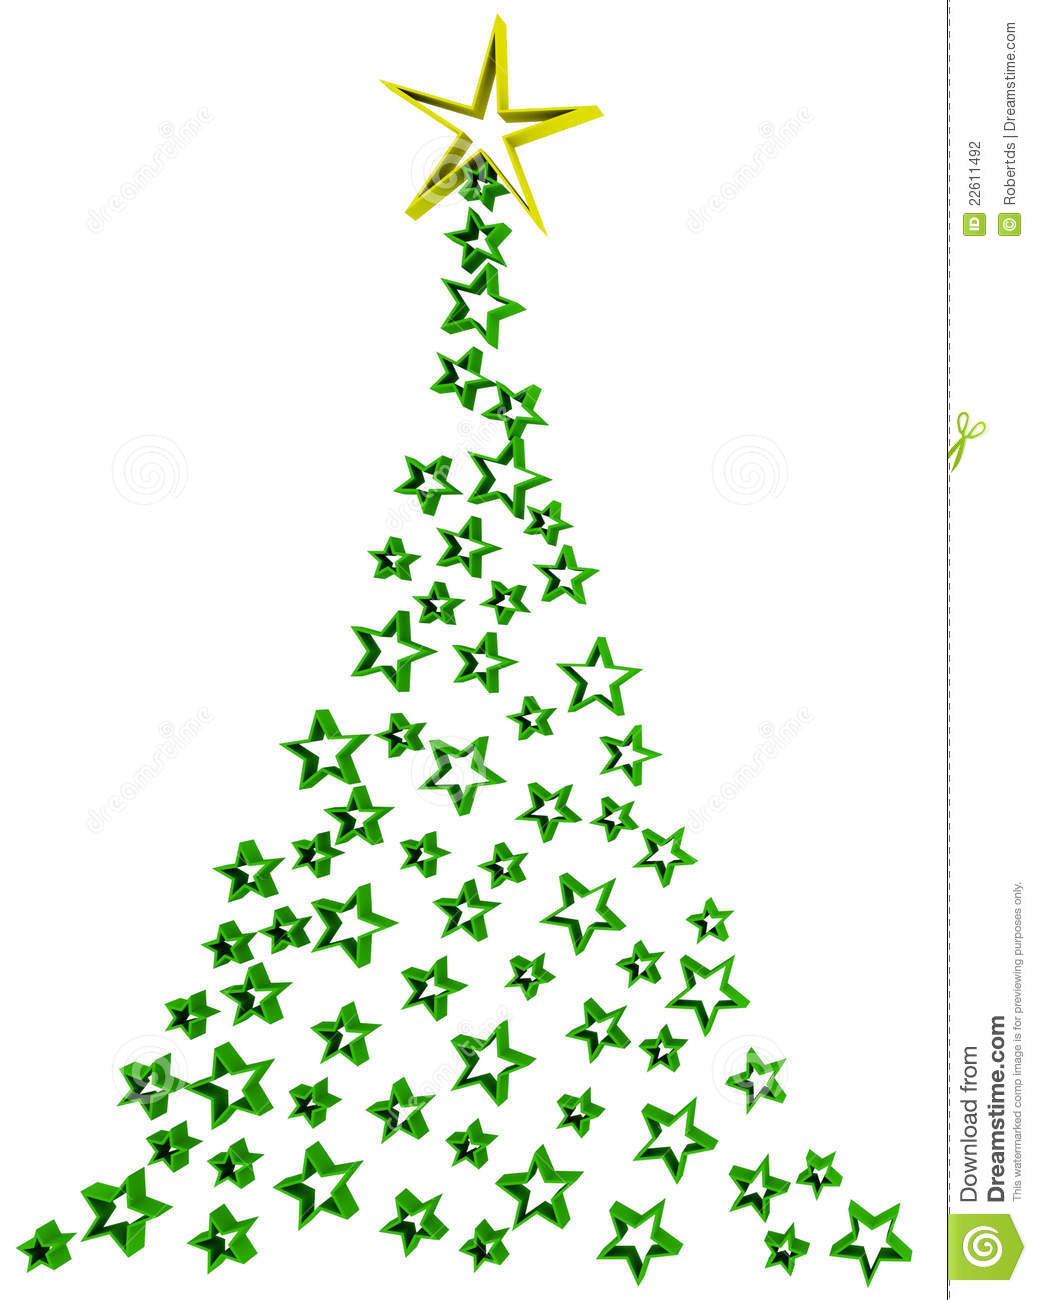 Abstract Christmas Ornament Clipart.